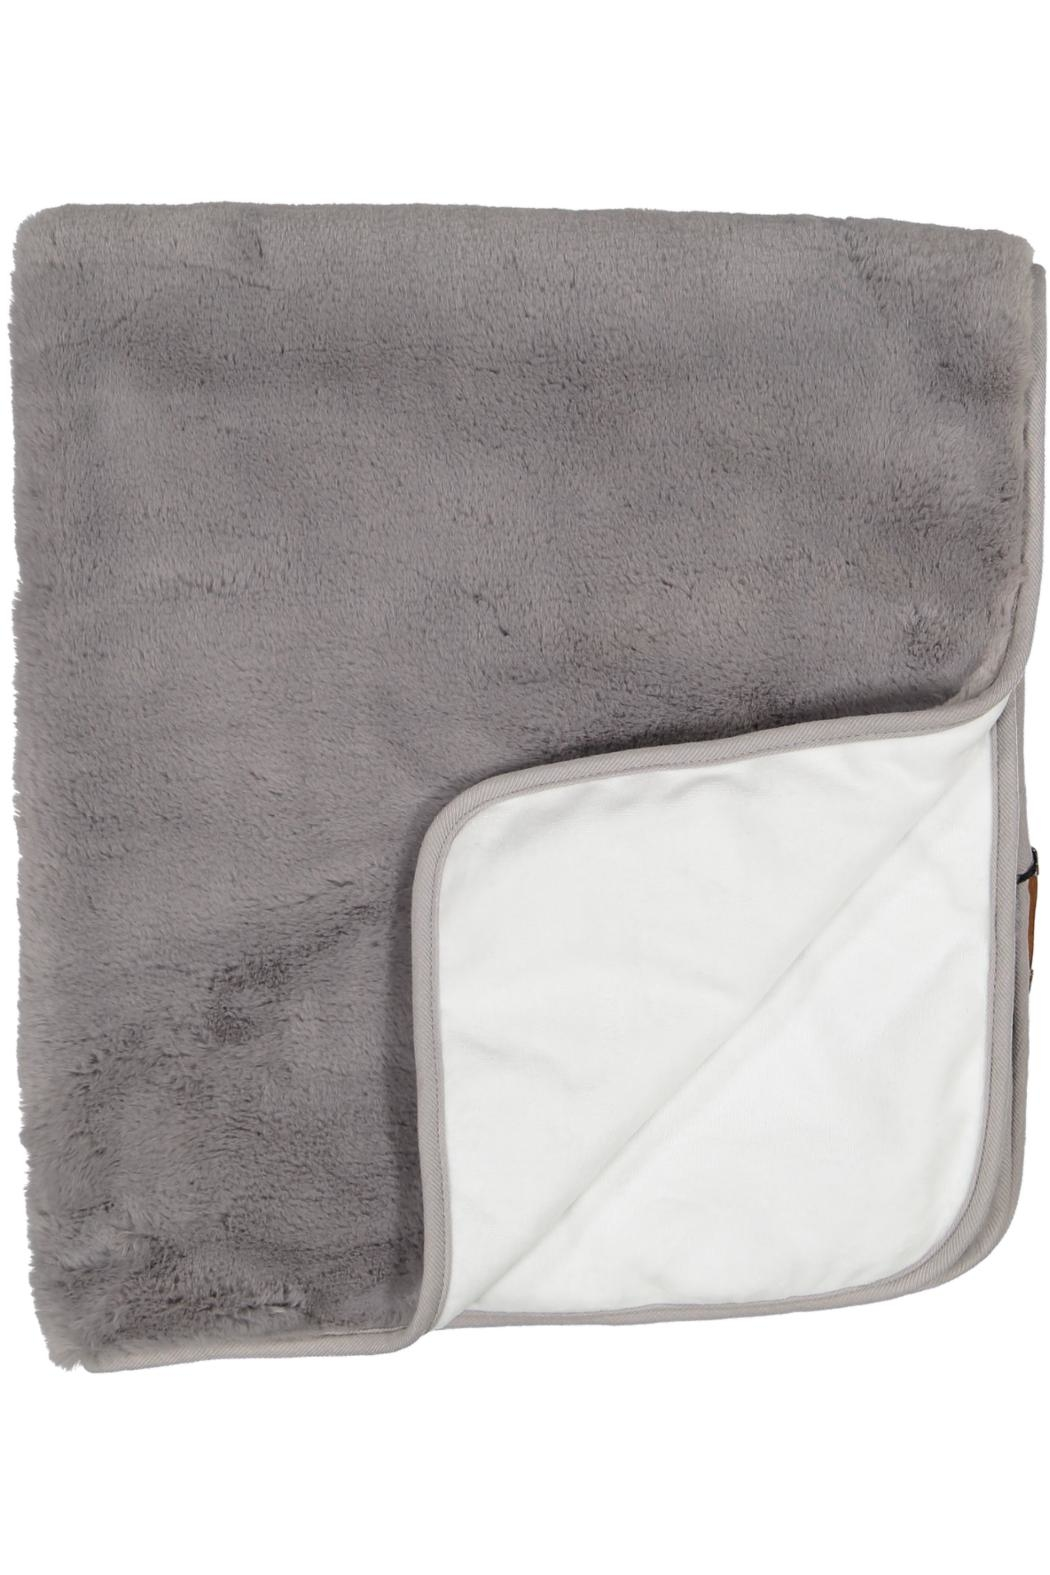 Juste Clé Grey And White Fur Blanket - Main Image